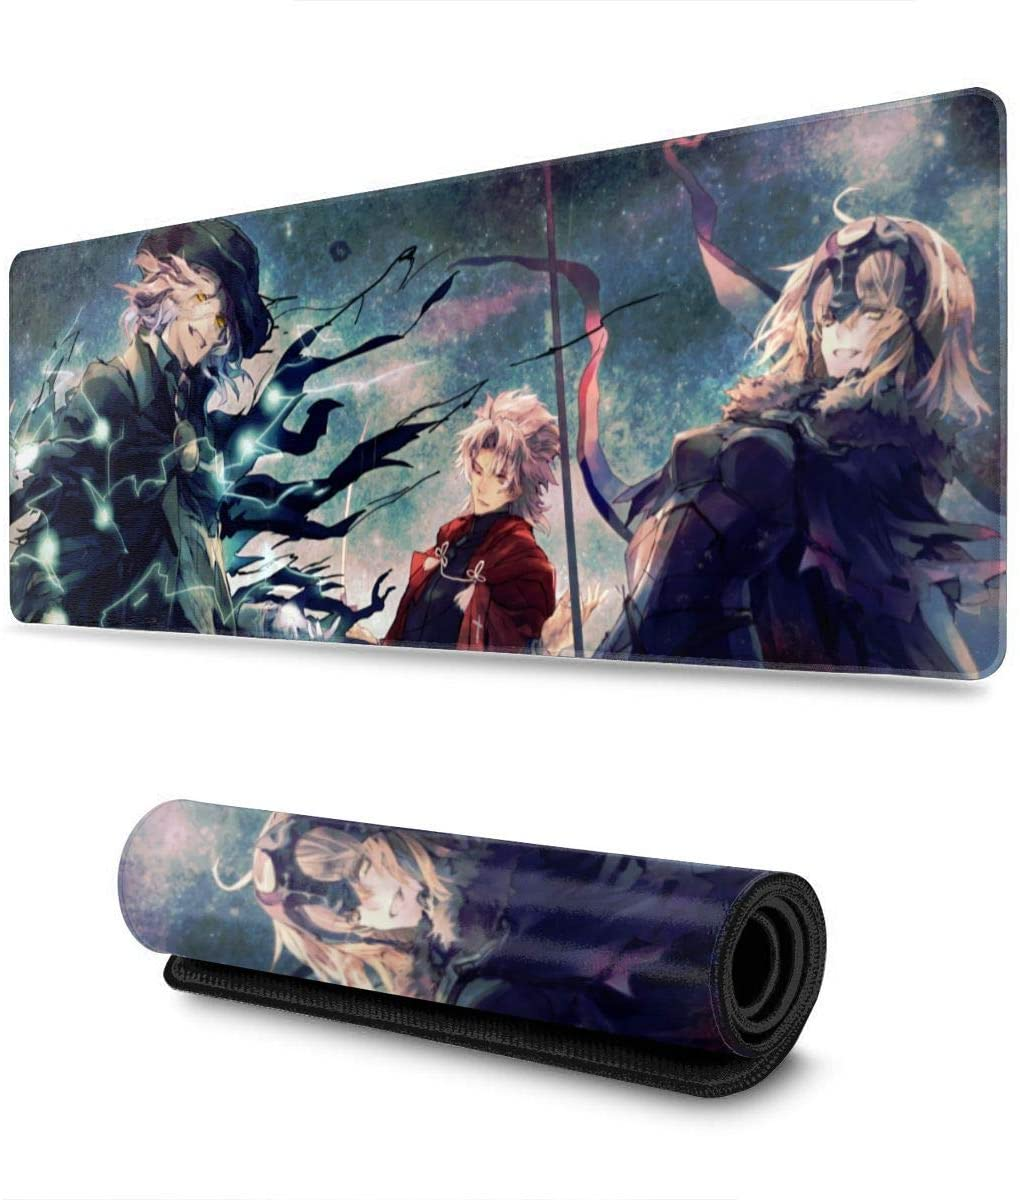 Fate Grand Order Large Waterproof Laptop Office Keyboard pad Professional Gaming Gaming Mouse pad